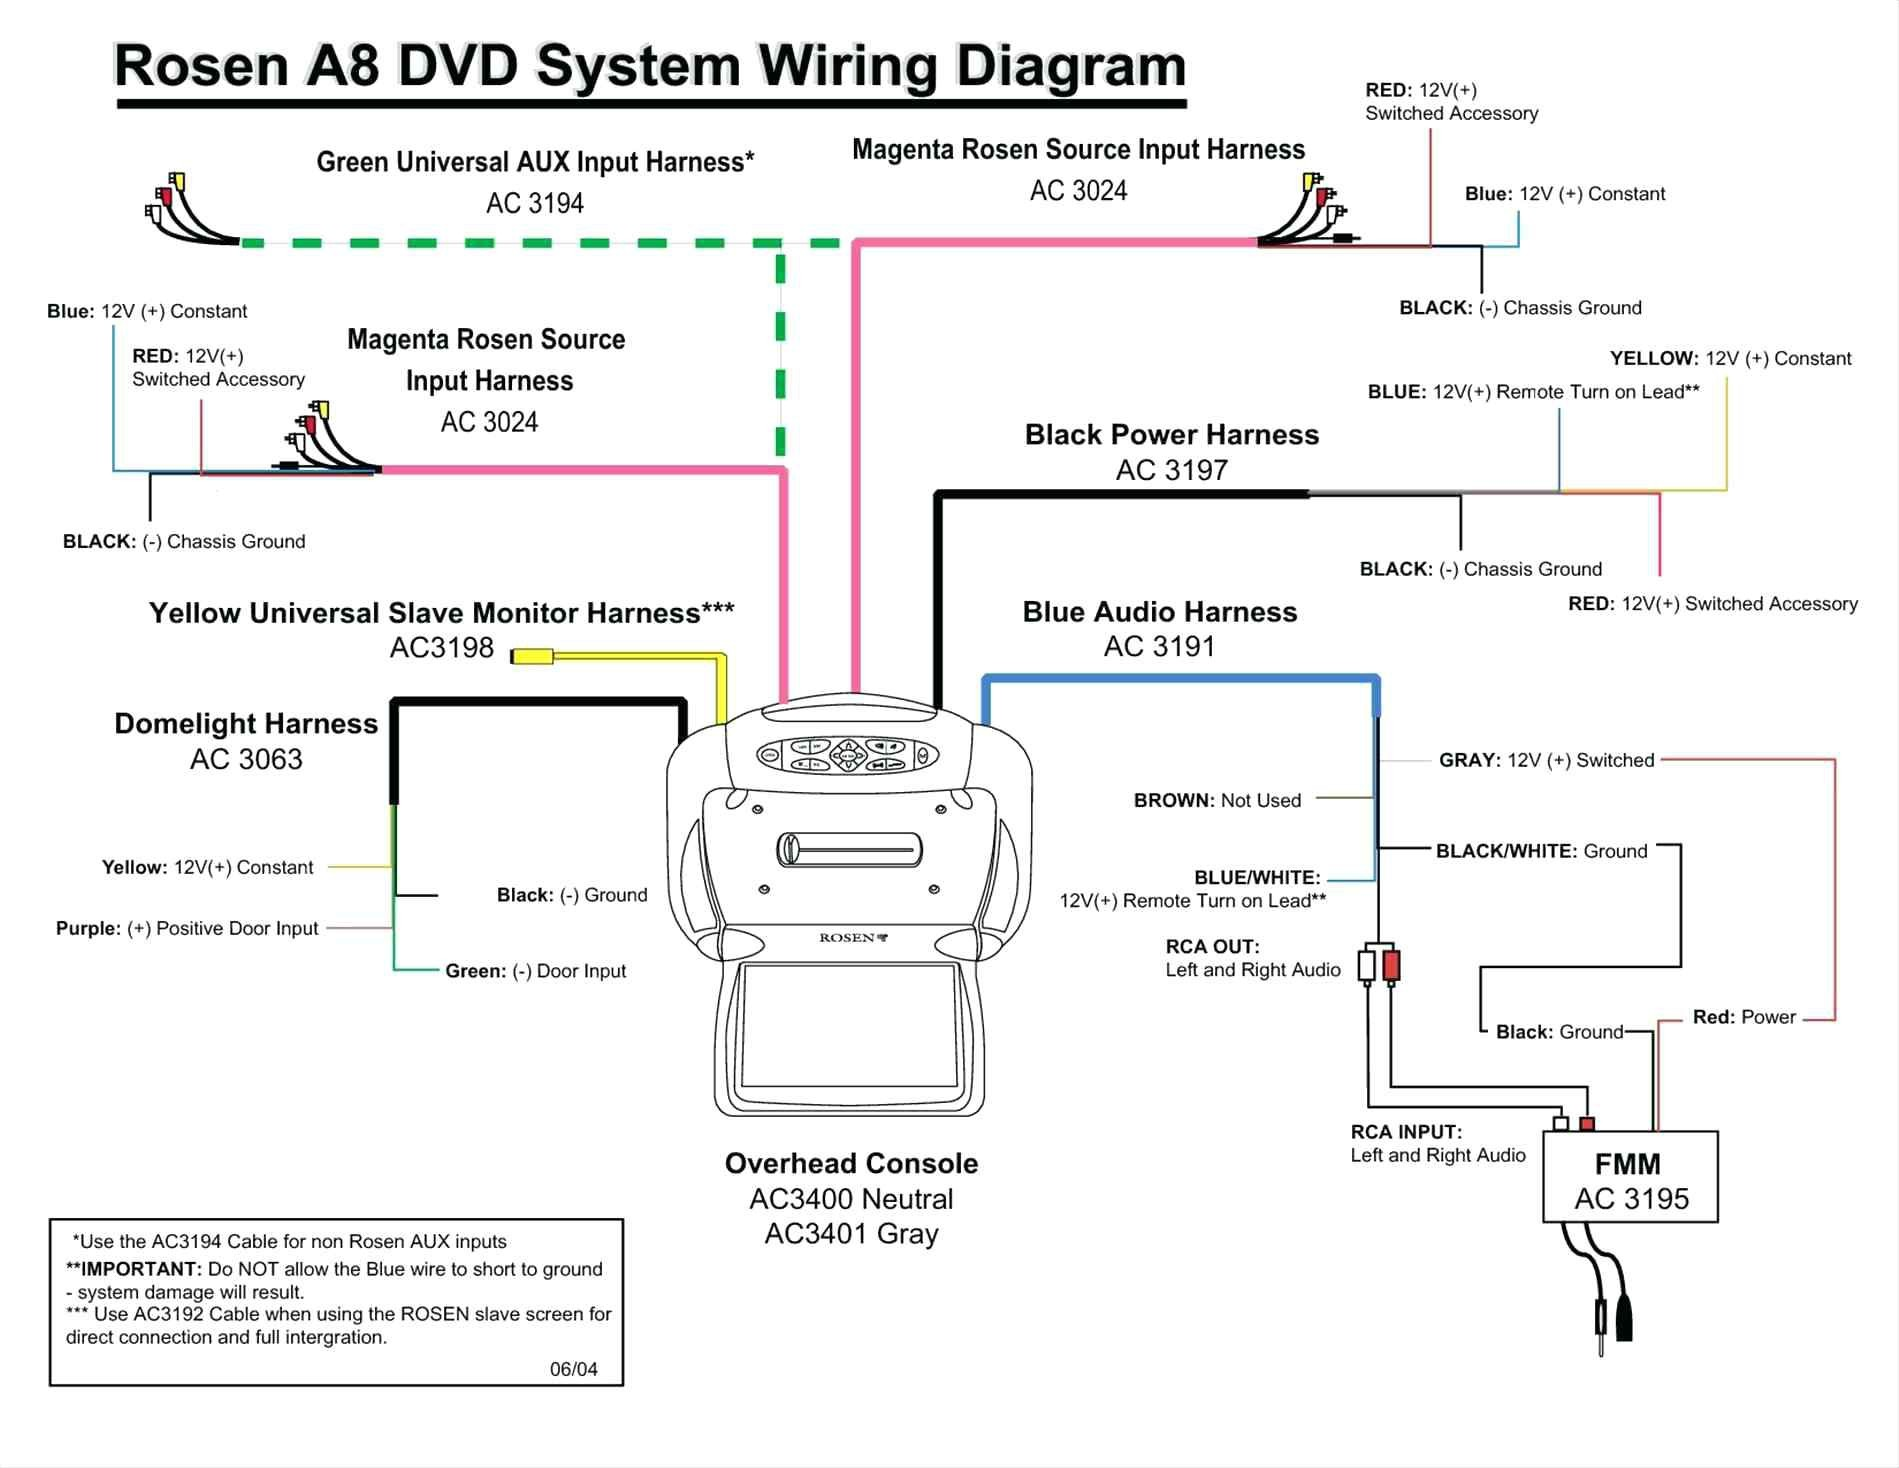 BFC75 Pkey Wiring Diagram | Wiring Resources on kenwood kdc wiring-diagram, kenwood kdc 252u specs, kenwood head unit,